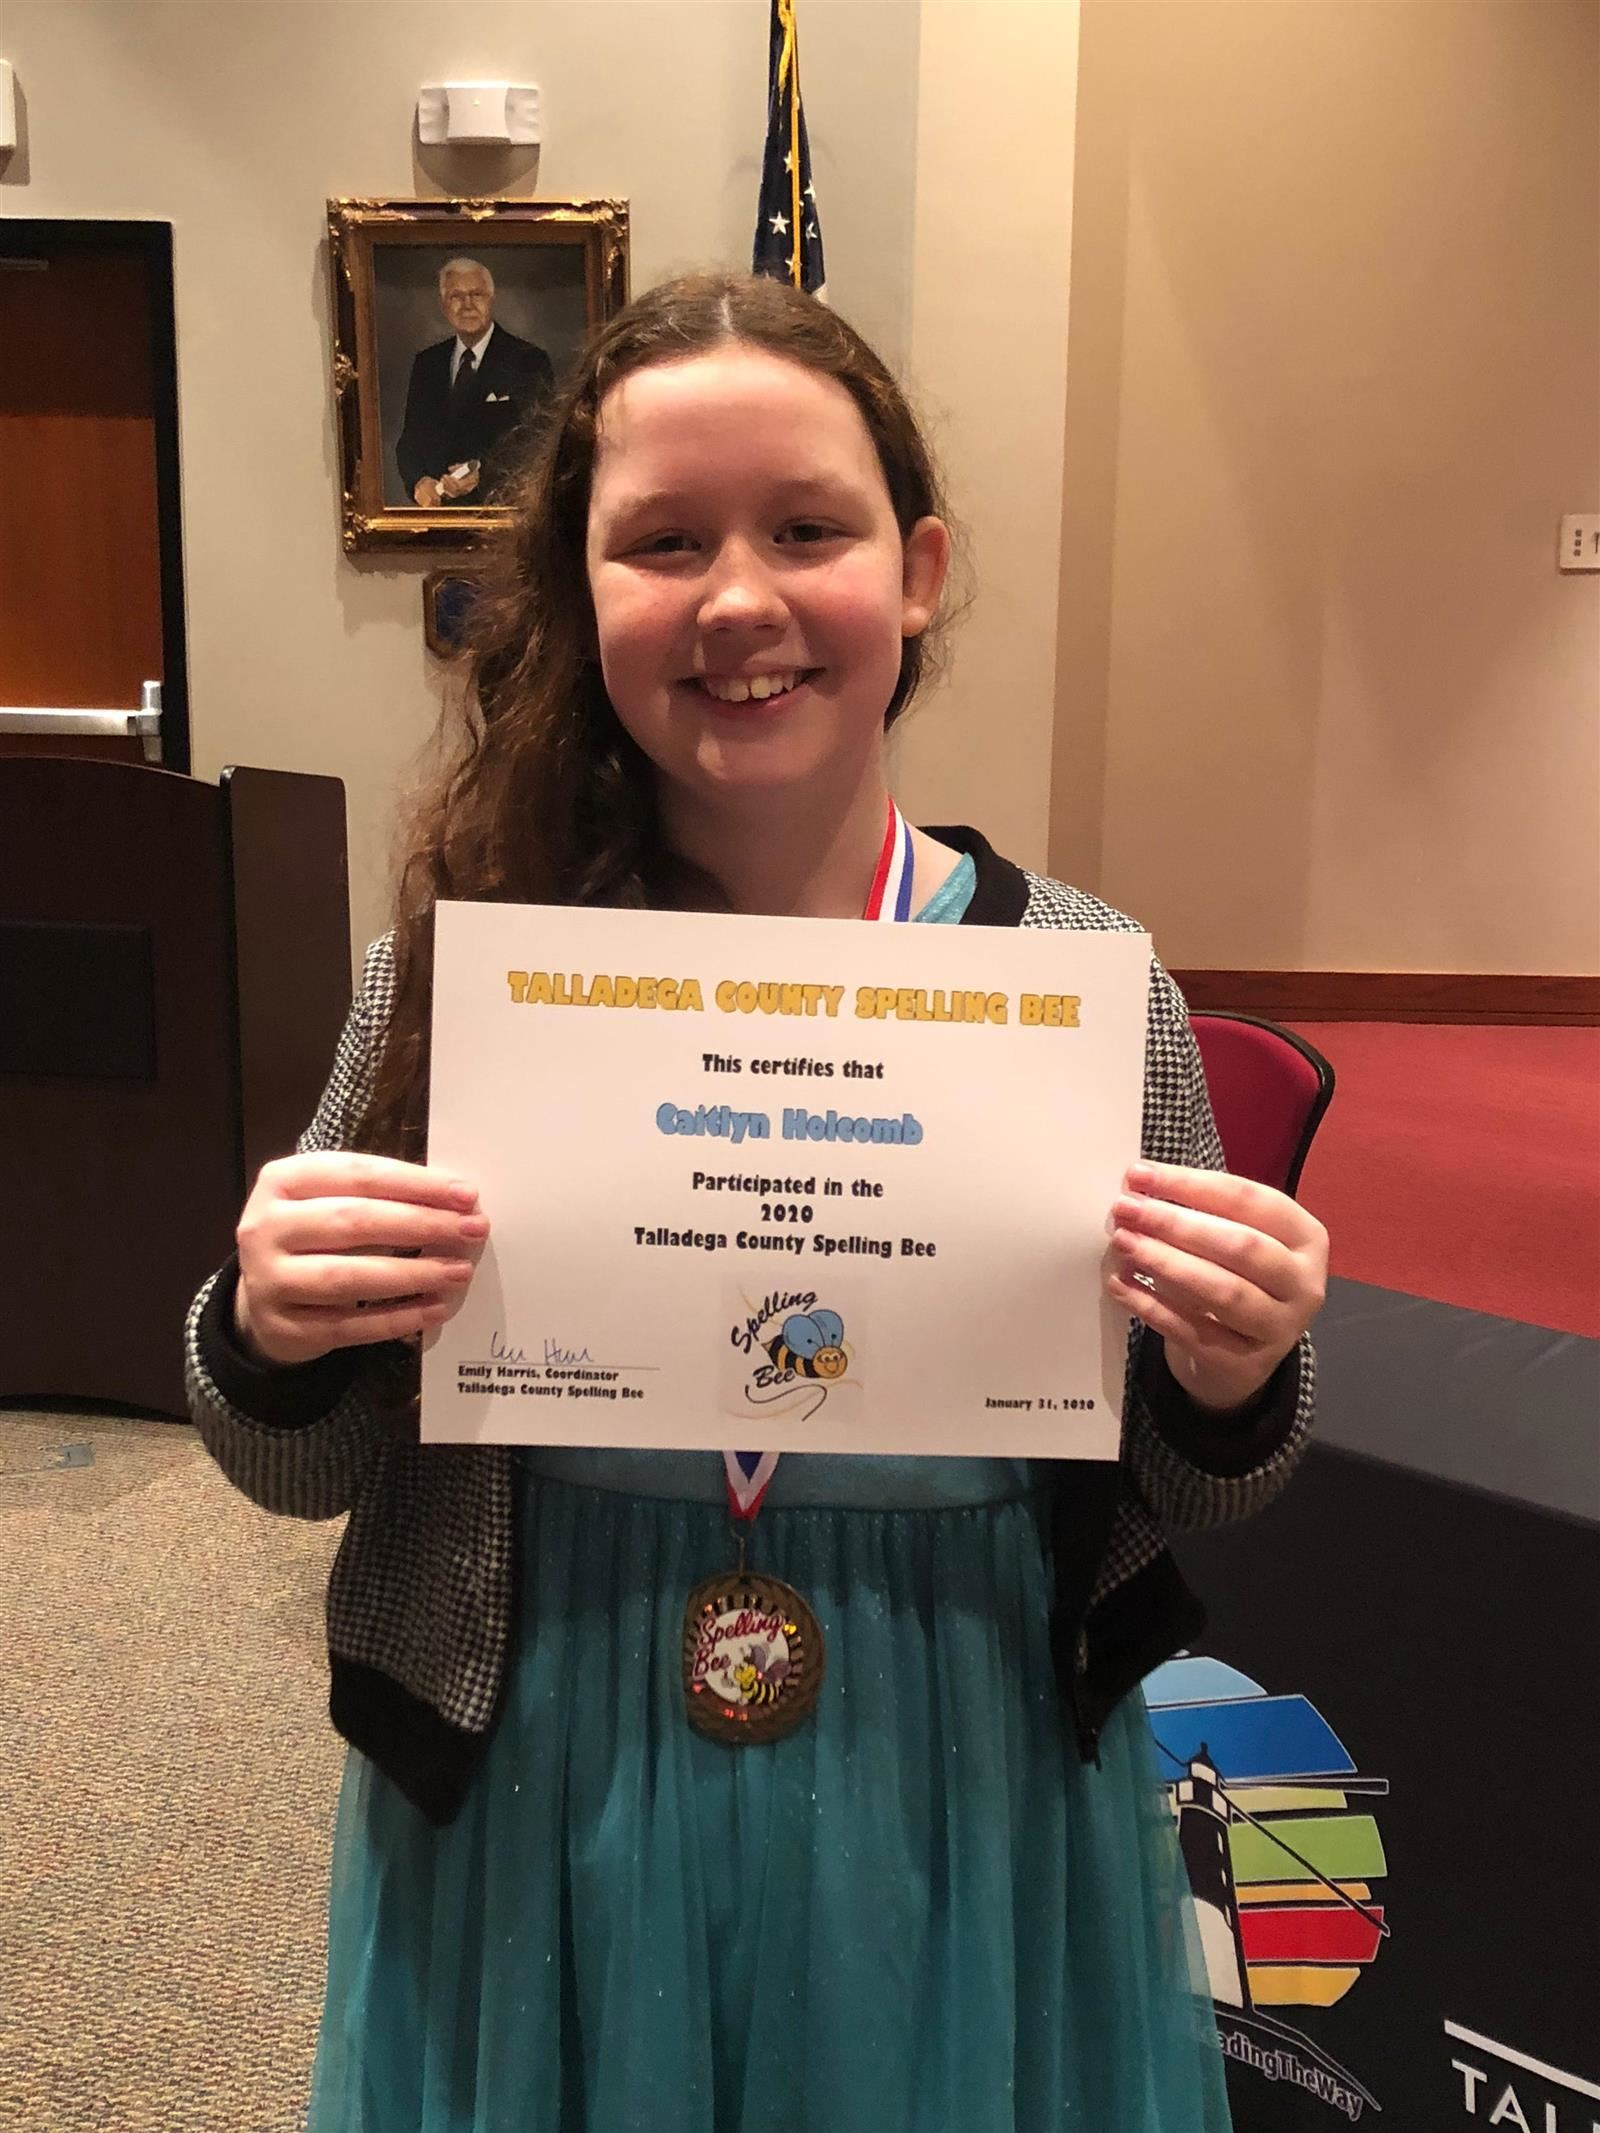 Caitlyn Holcomb Talladega County Spelling Bee Runner-Up